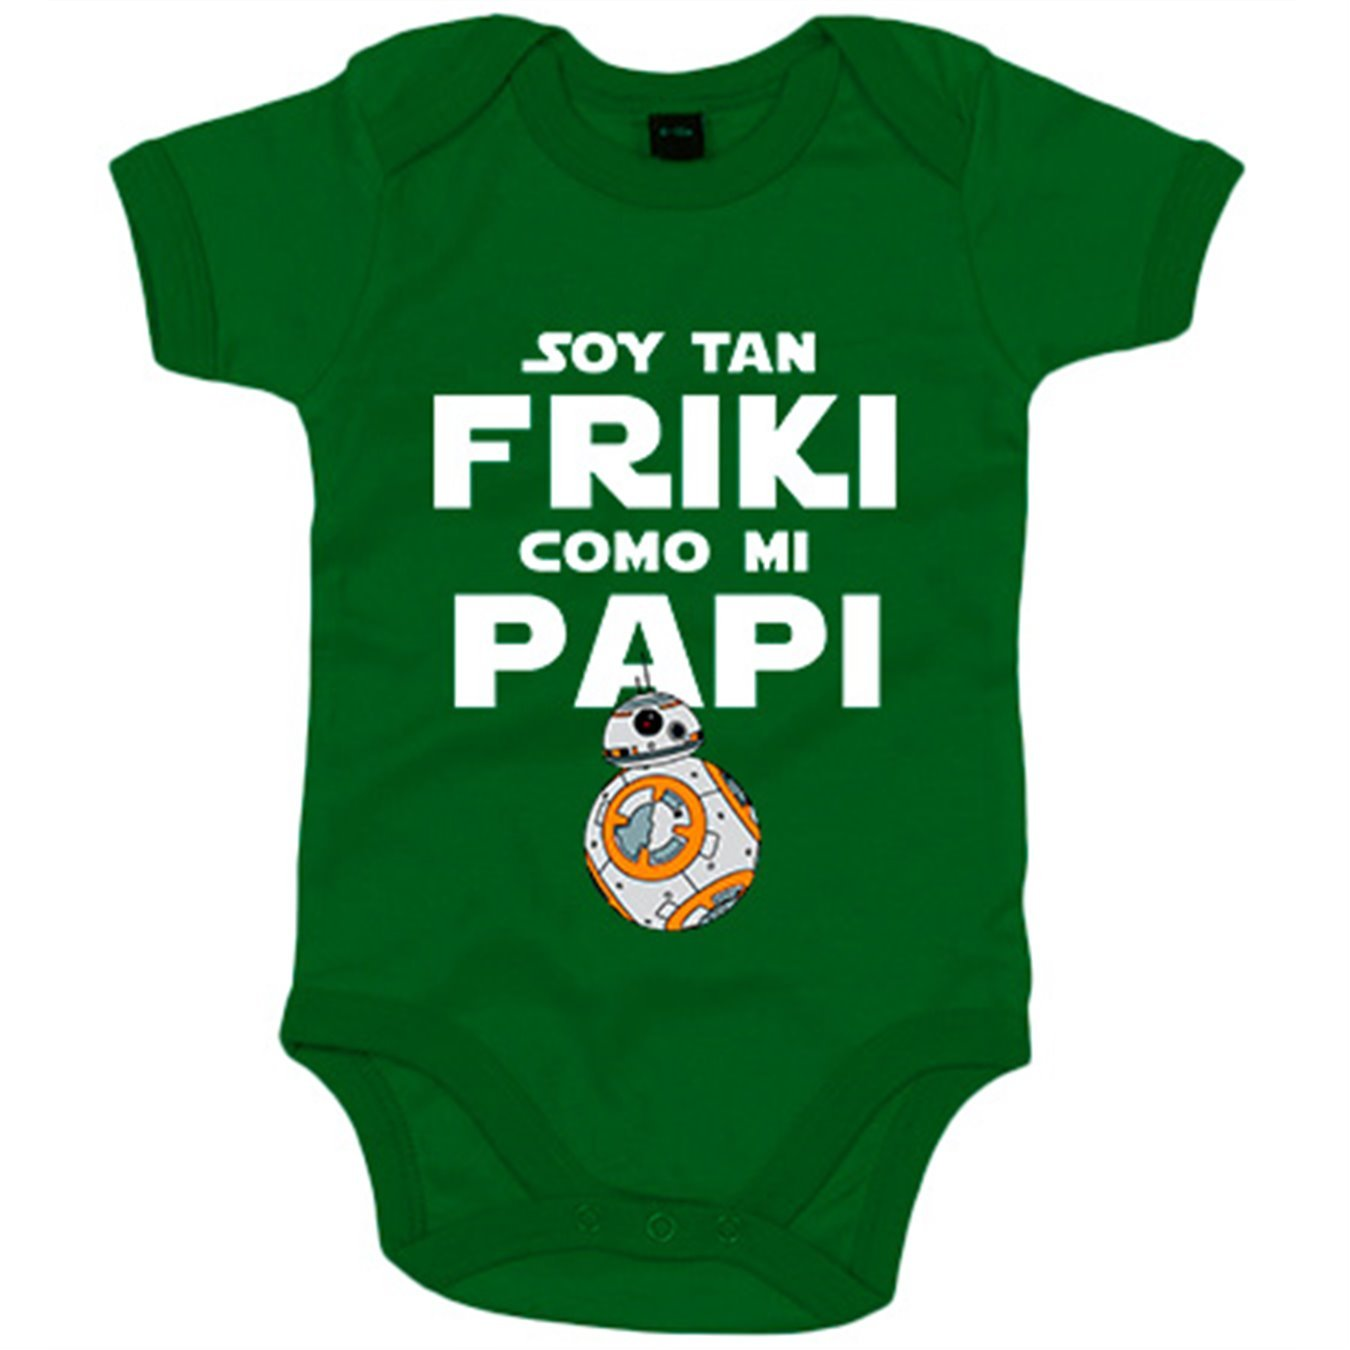 Body bebé Star Wars BB8 Soy tan friki como papi - Amarillo, 6-12 meses: Amazon.es: Bebé